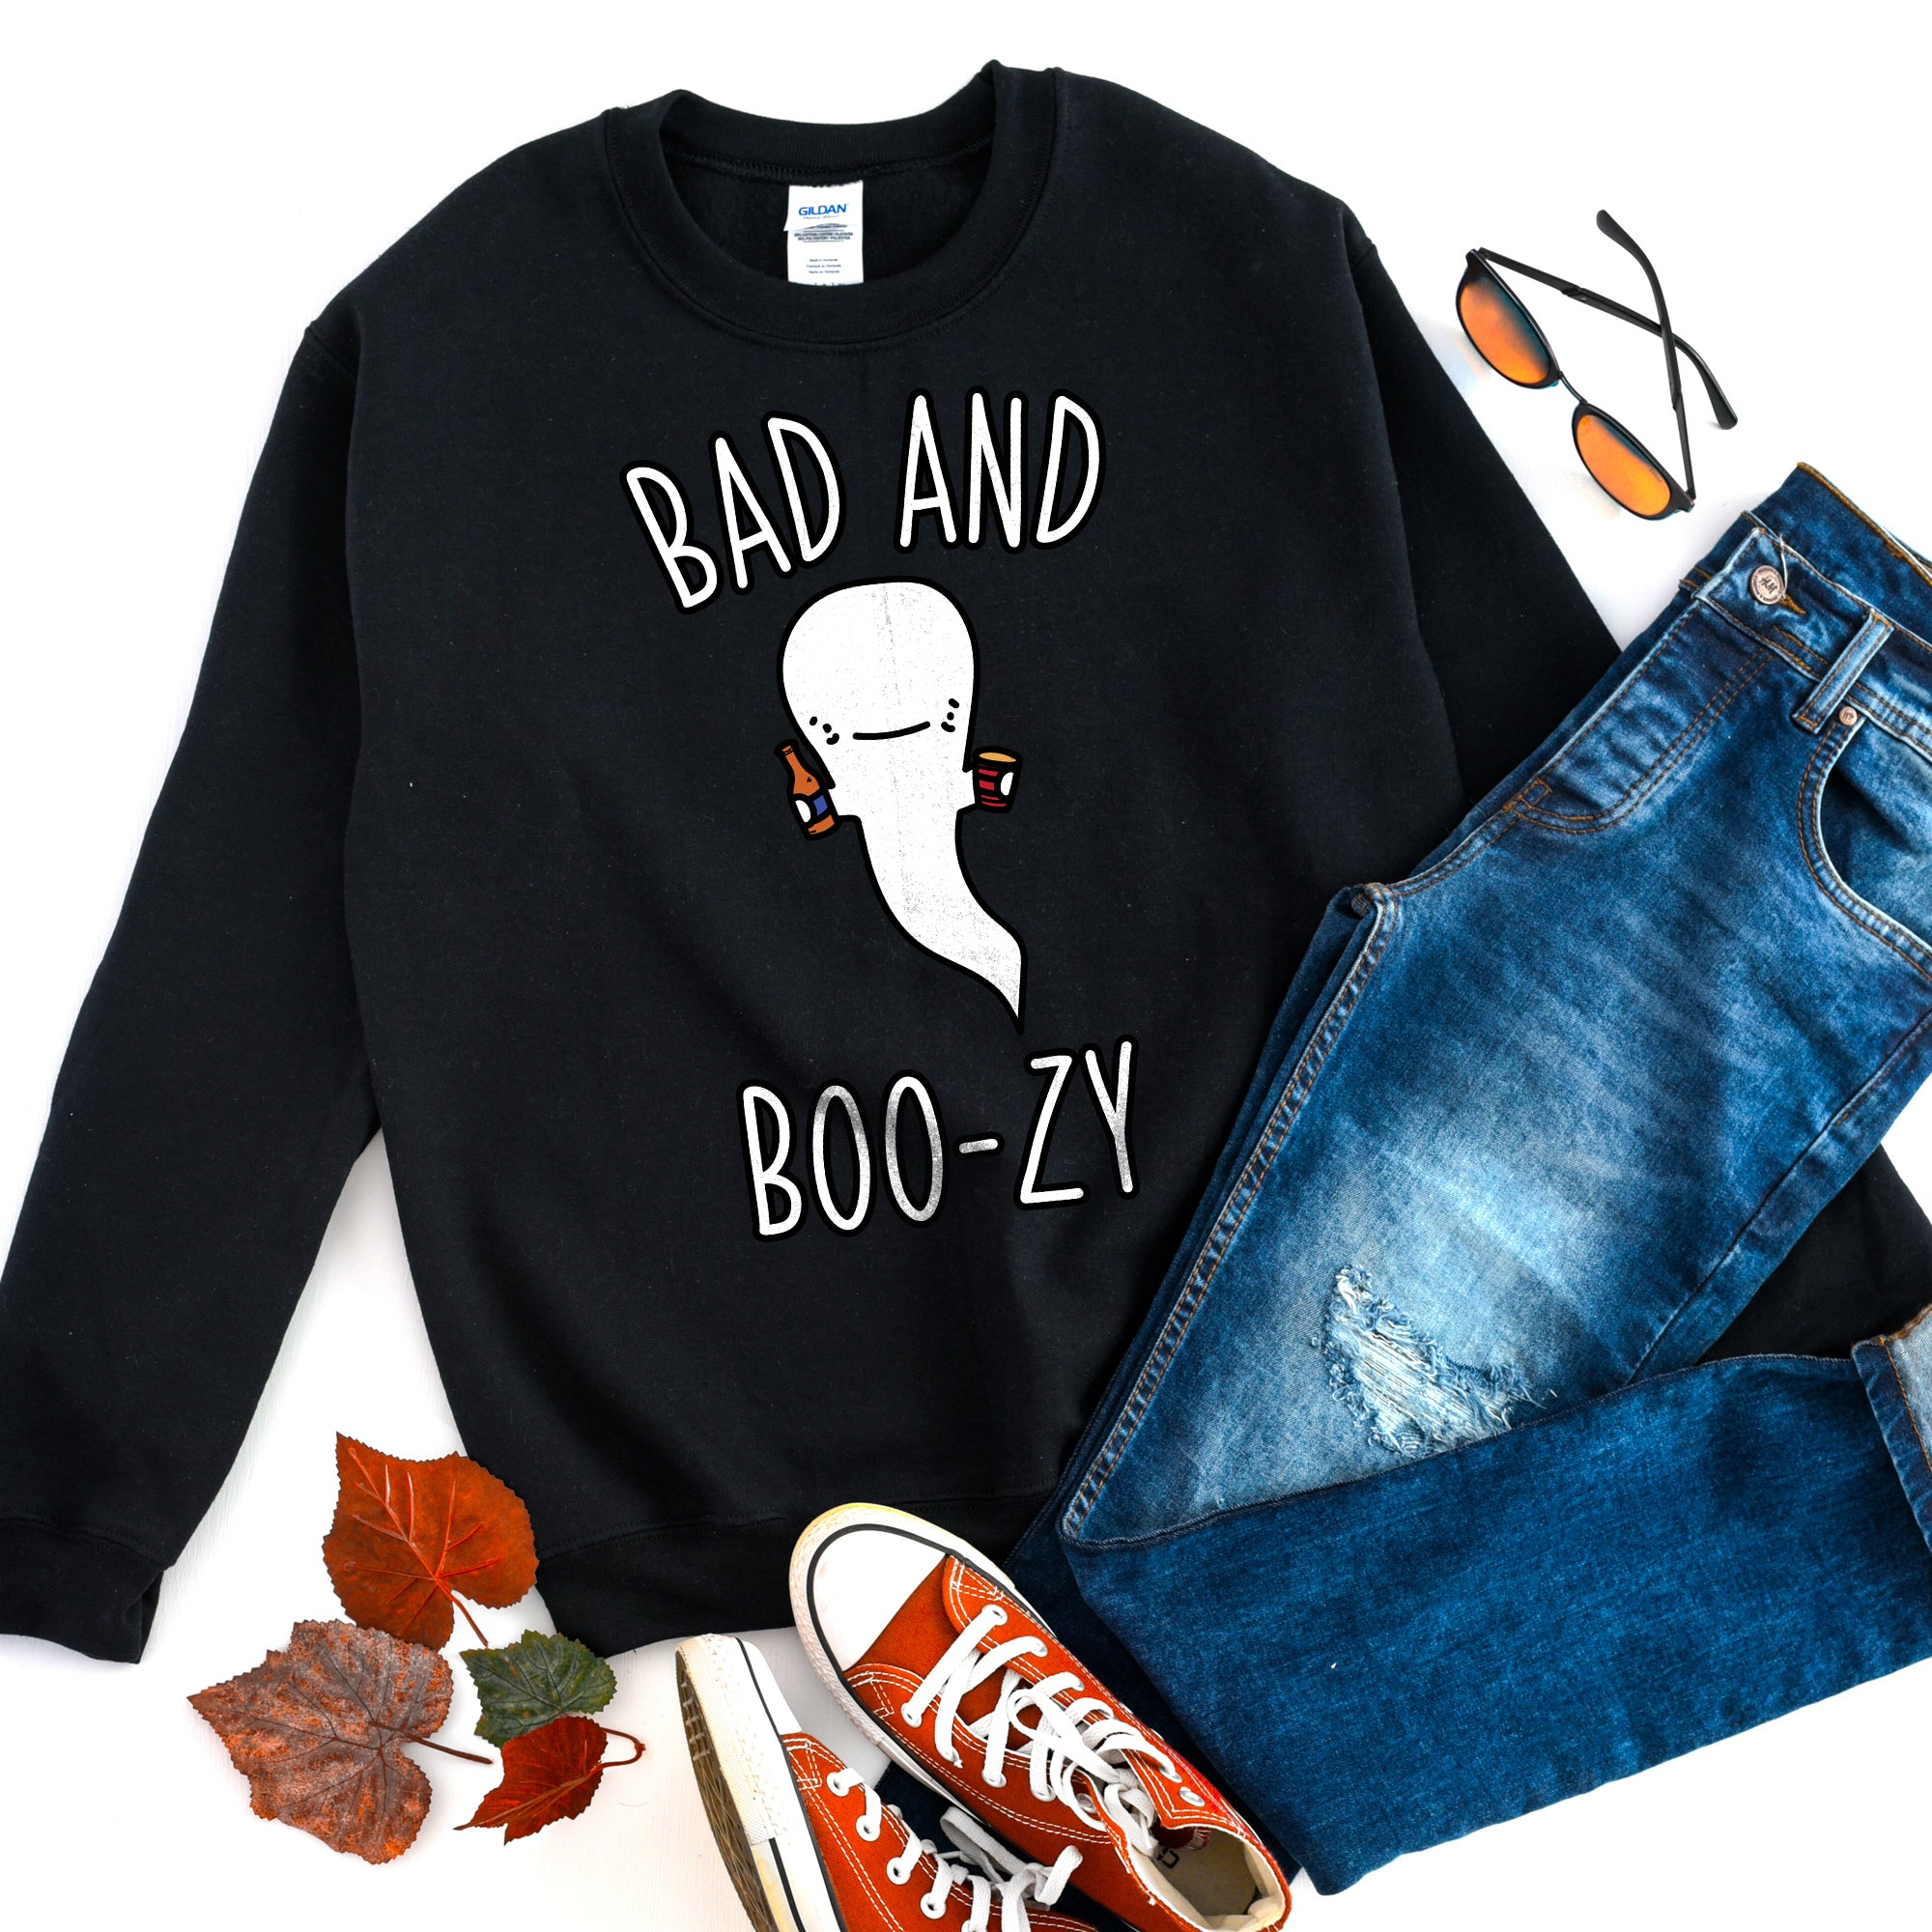 Bad and Boozy Halloween Sweatshirt Bad and Boujee Shirt Halloween Drinking Shirt Halloween Party Shirt Cute Funny Halloween Sweatshirt